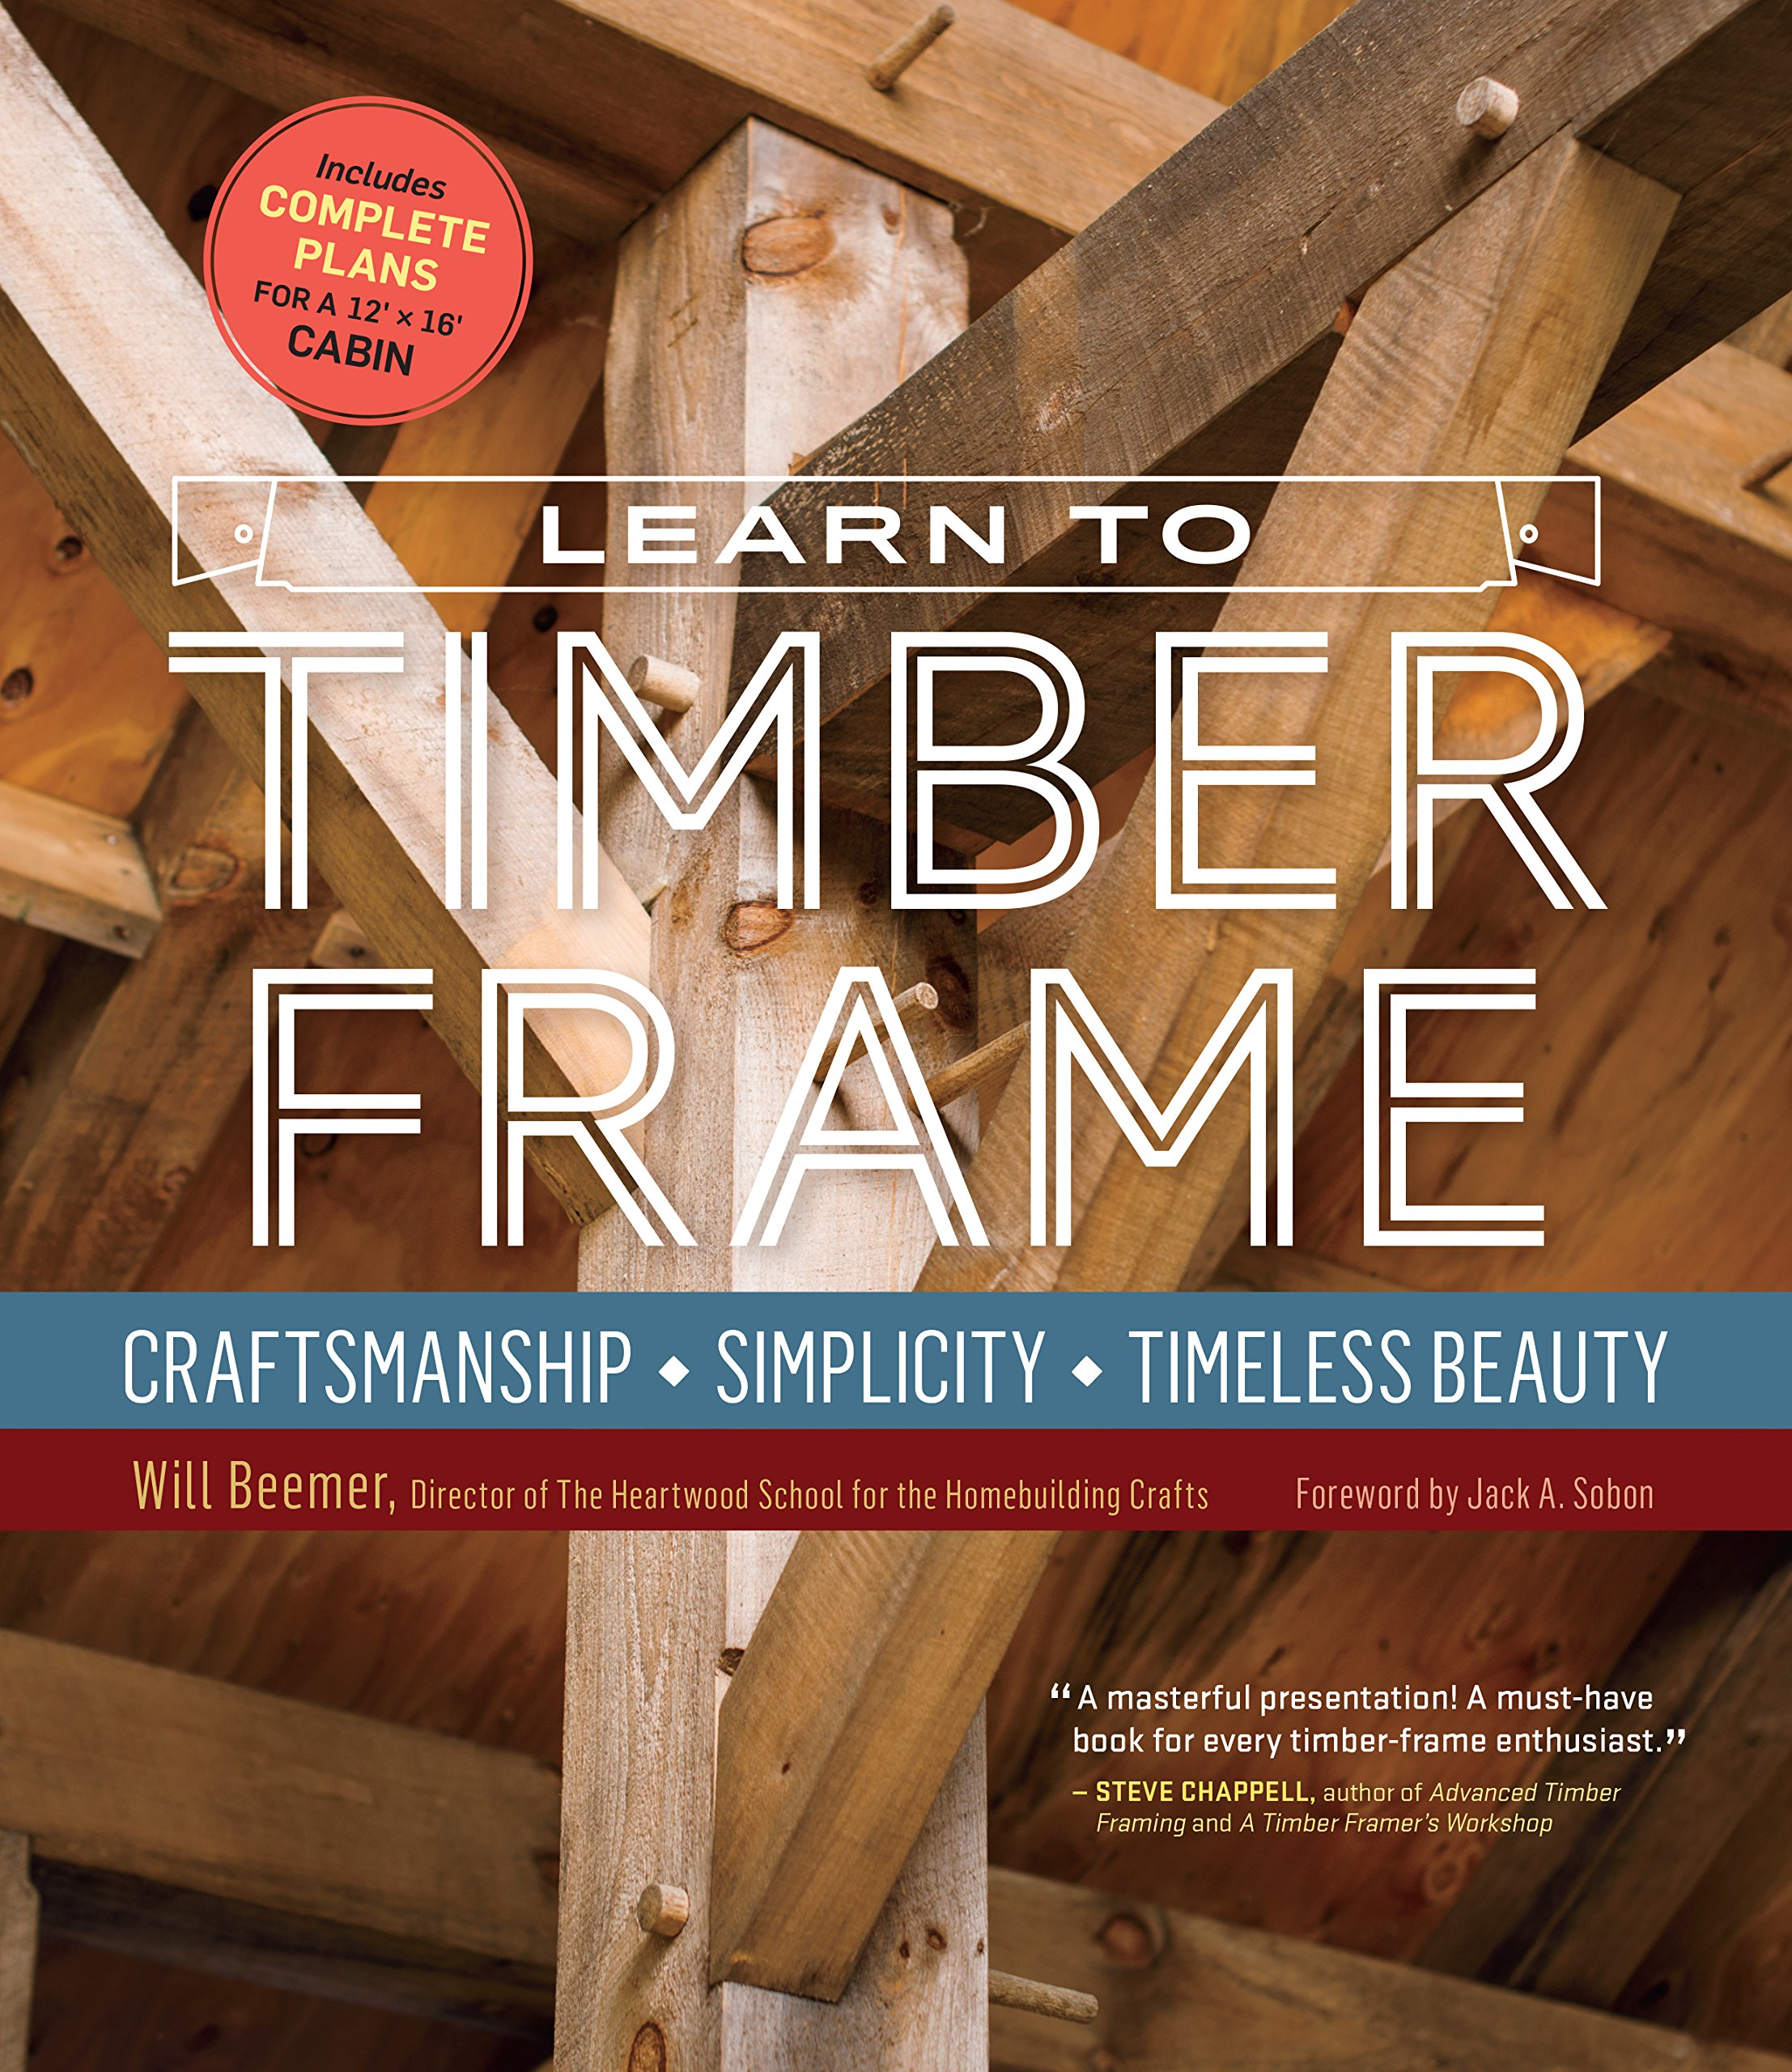 bbabe97b1200 Learn to Timber Frame  Craftsmanship, Simplicity, Timeless Beauty  Will  Beemer, Jack A. Sobon  9781612126685  Books - Amazon.ca